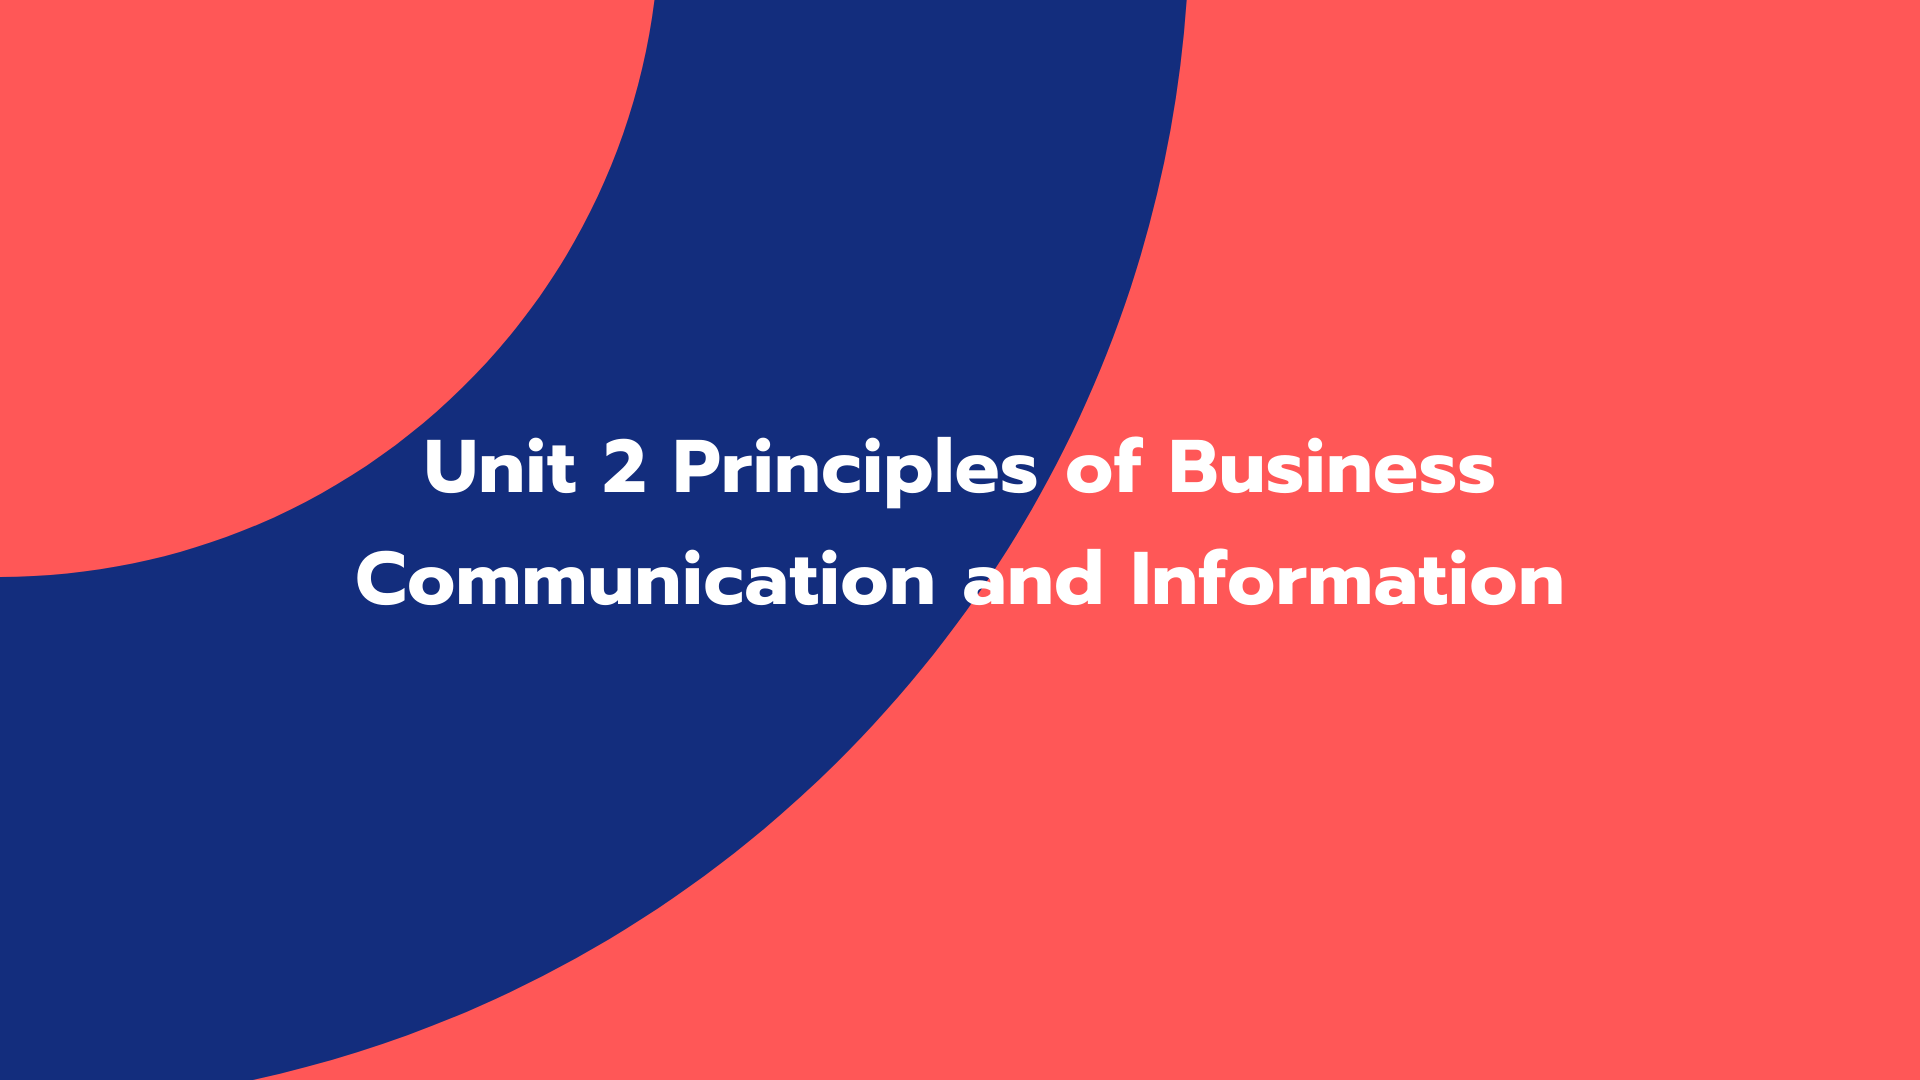 Unit 2 Principles of Business Communication and Information